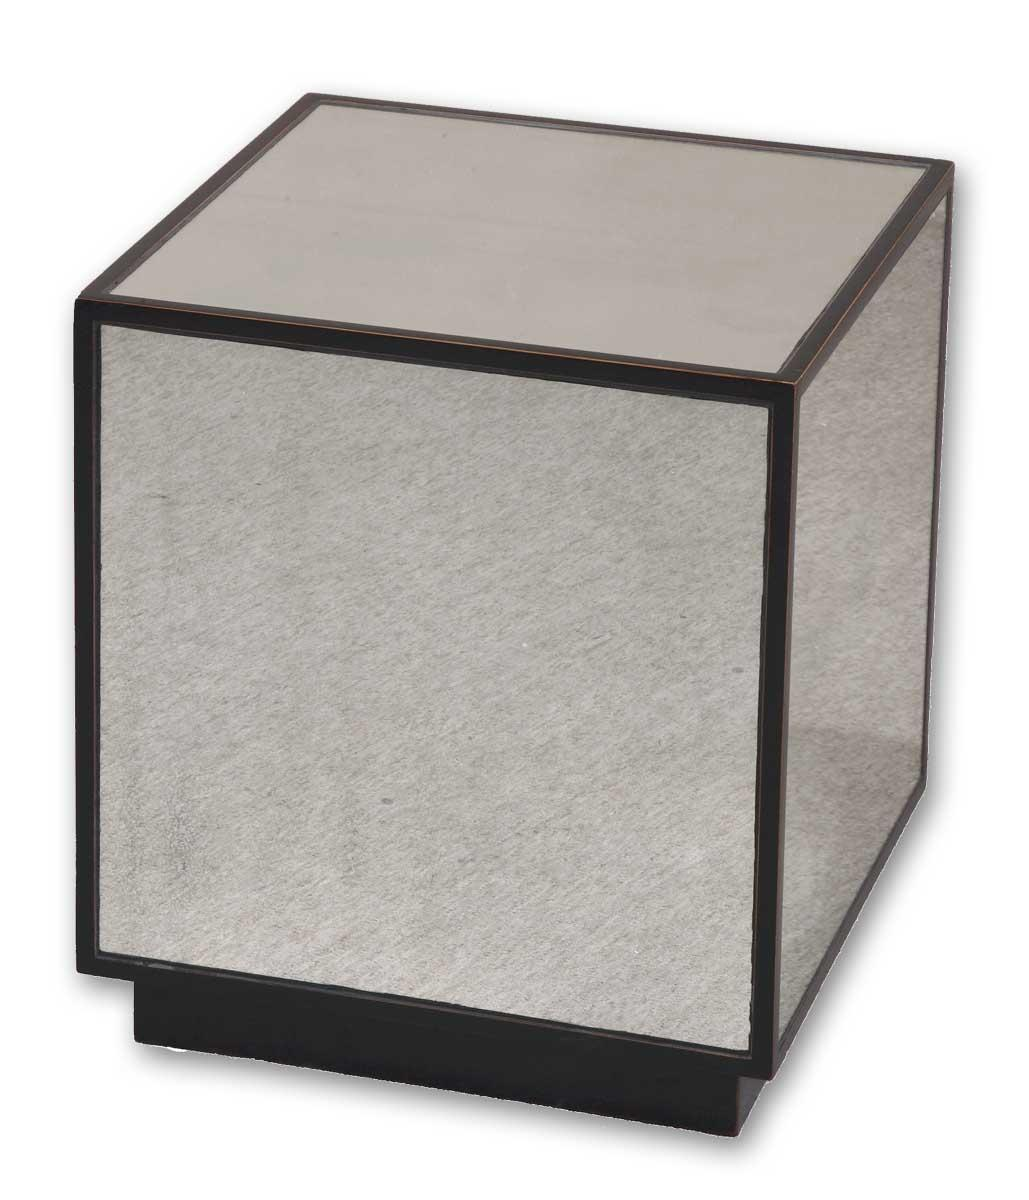 Accent Furniture - Occasional Tables Matty Mirrored Cube by Uttermost at Dream Home Interiors